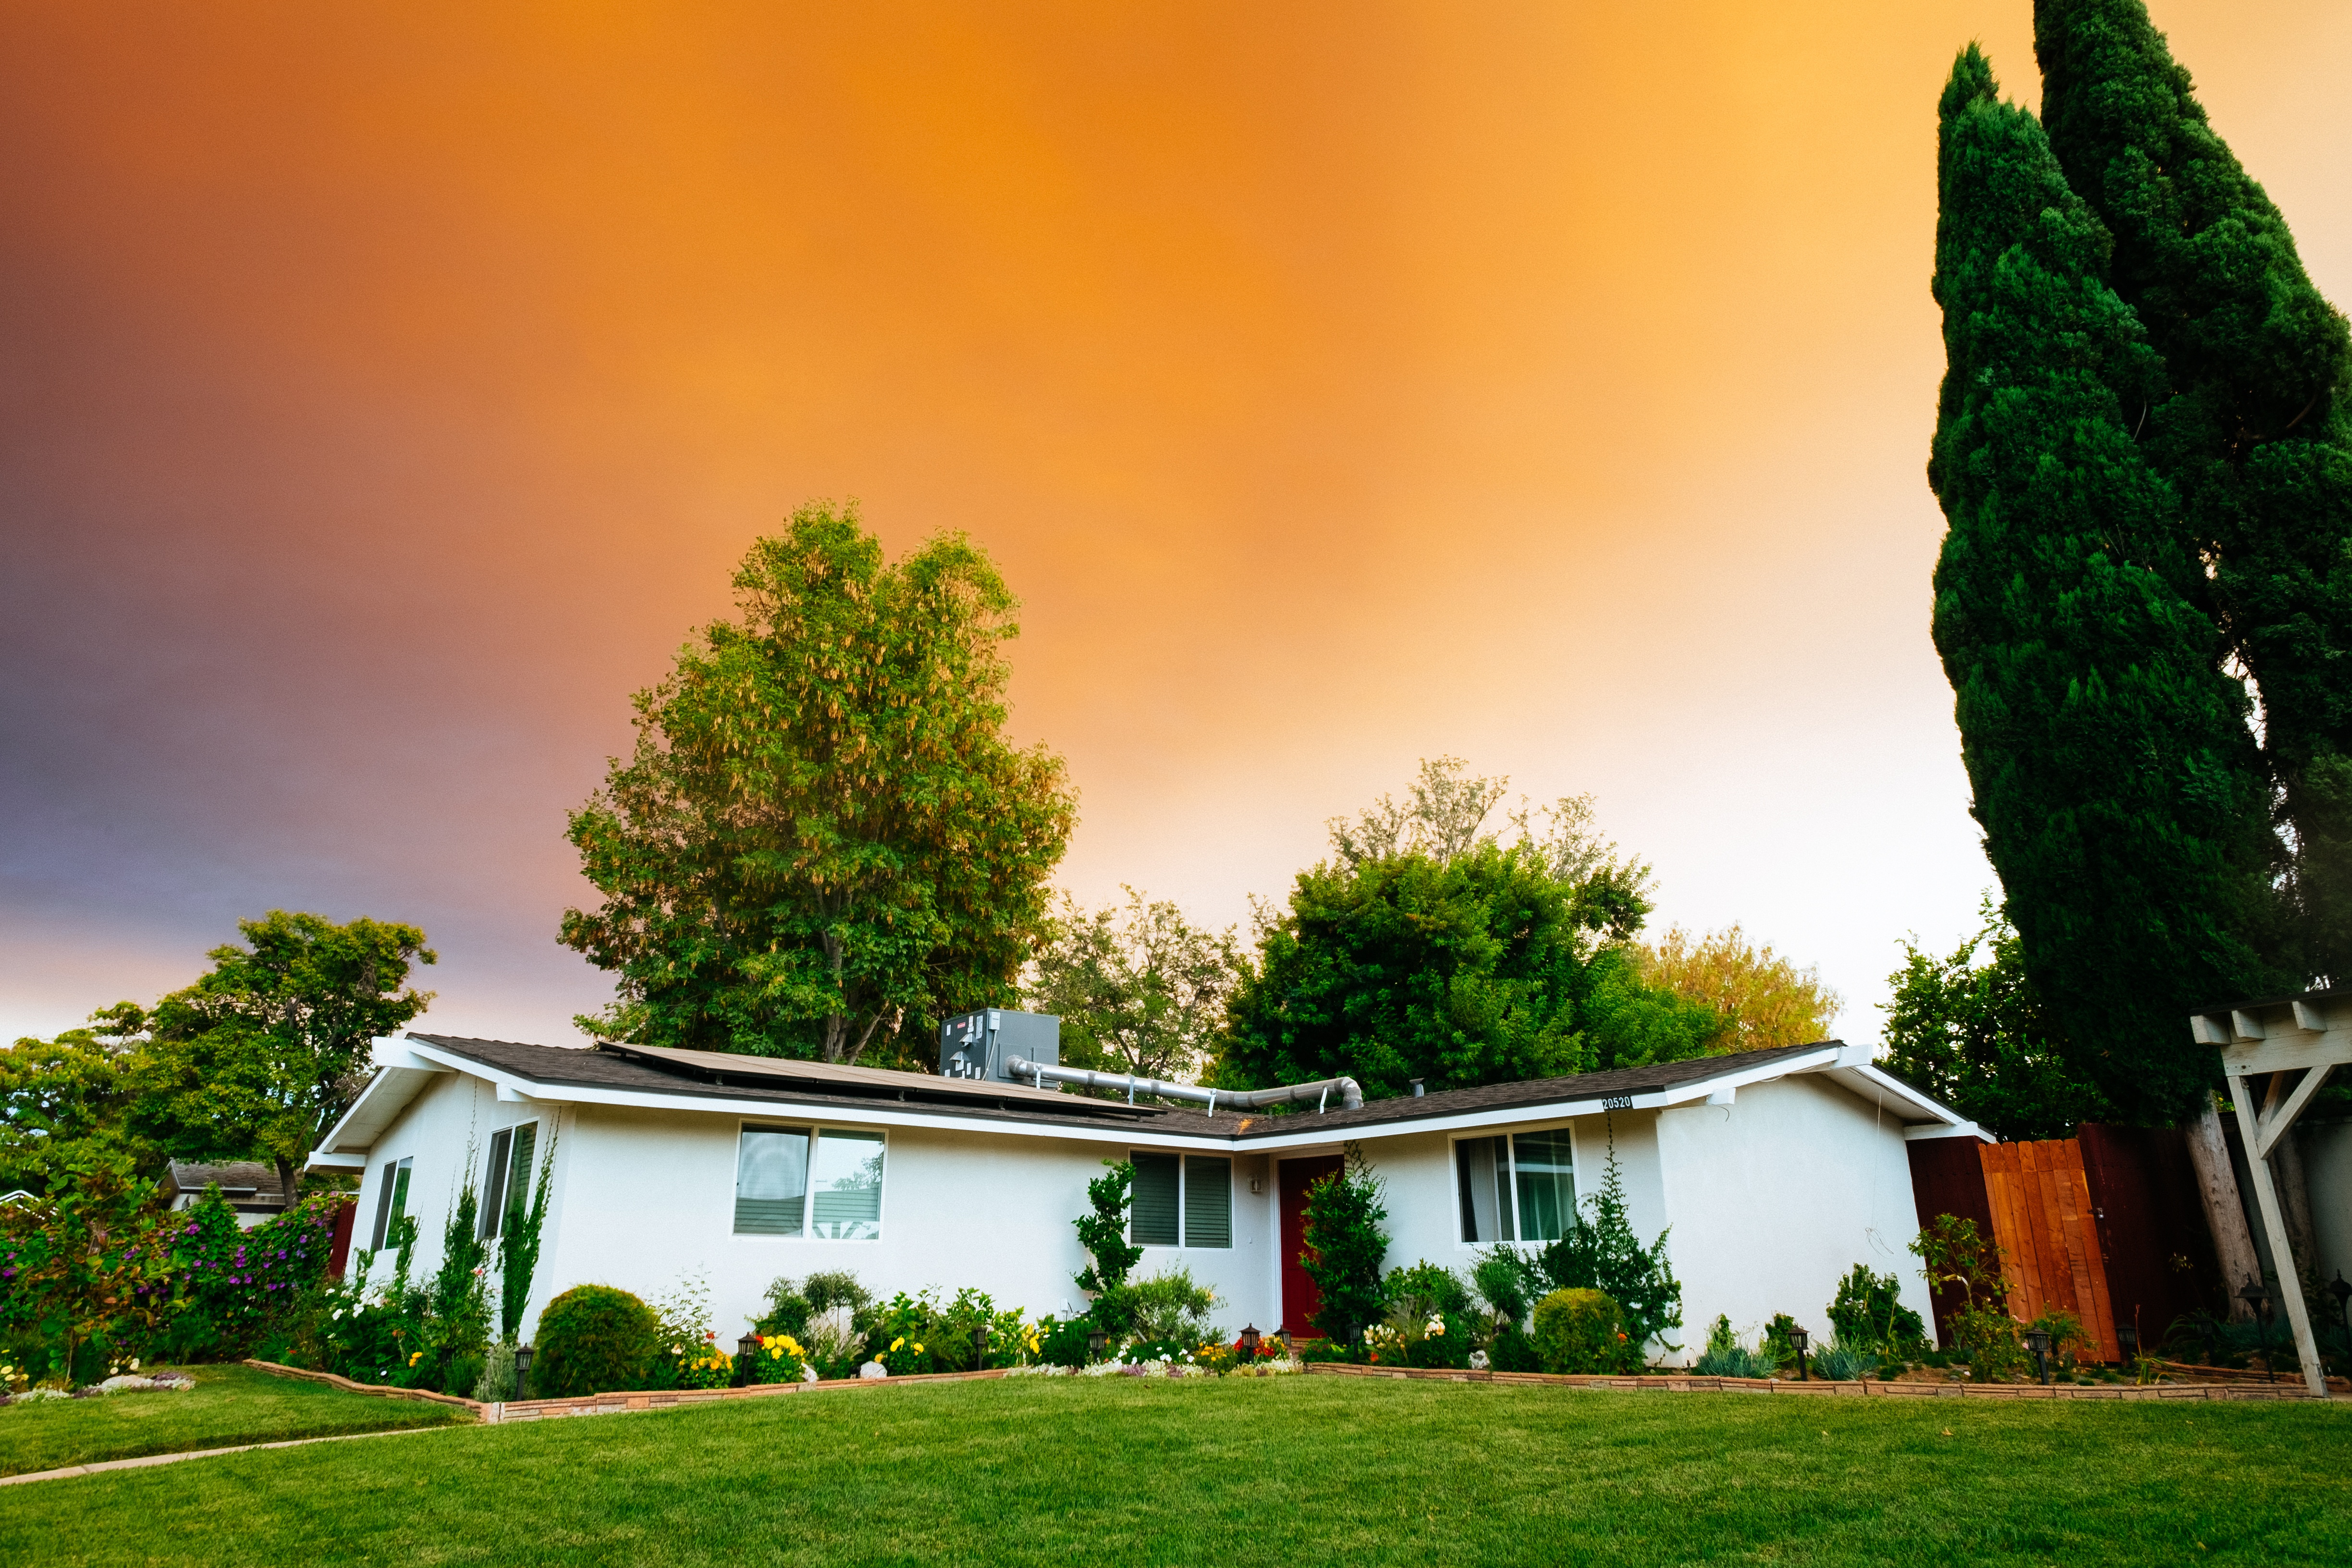 Making your home equity work for you